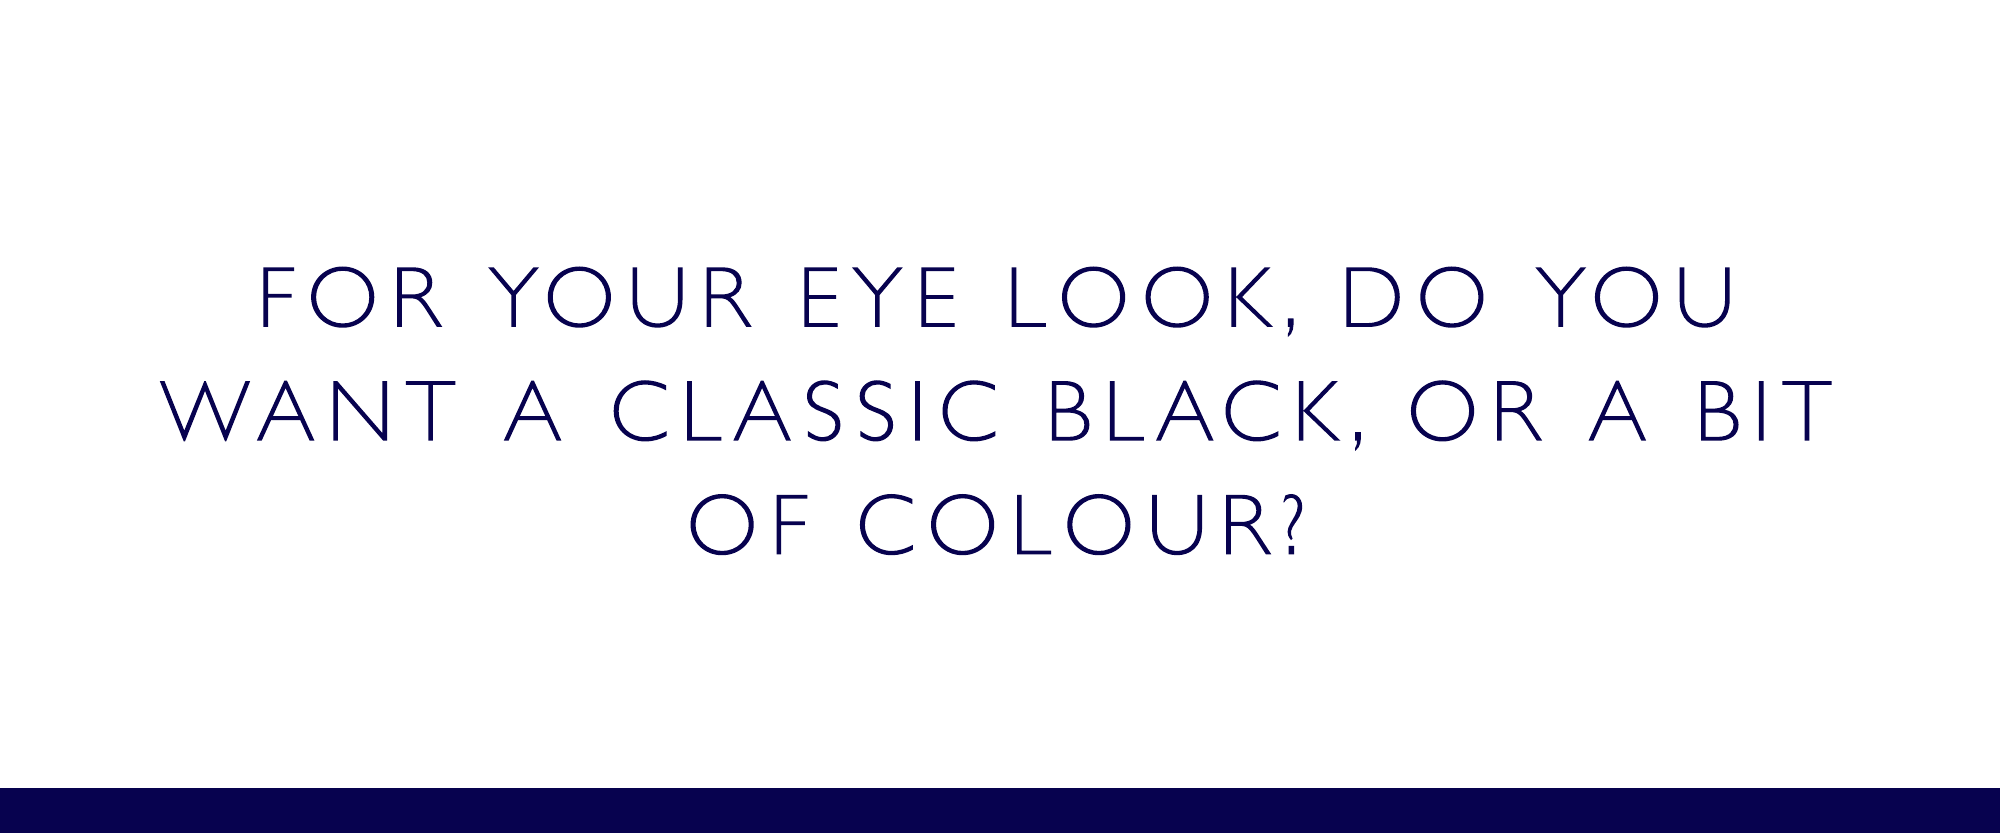 For your eye look, do you want a classic black or a bit of colour?